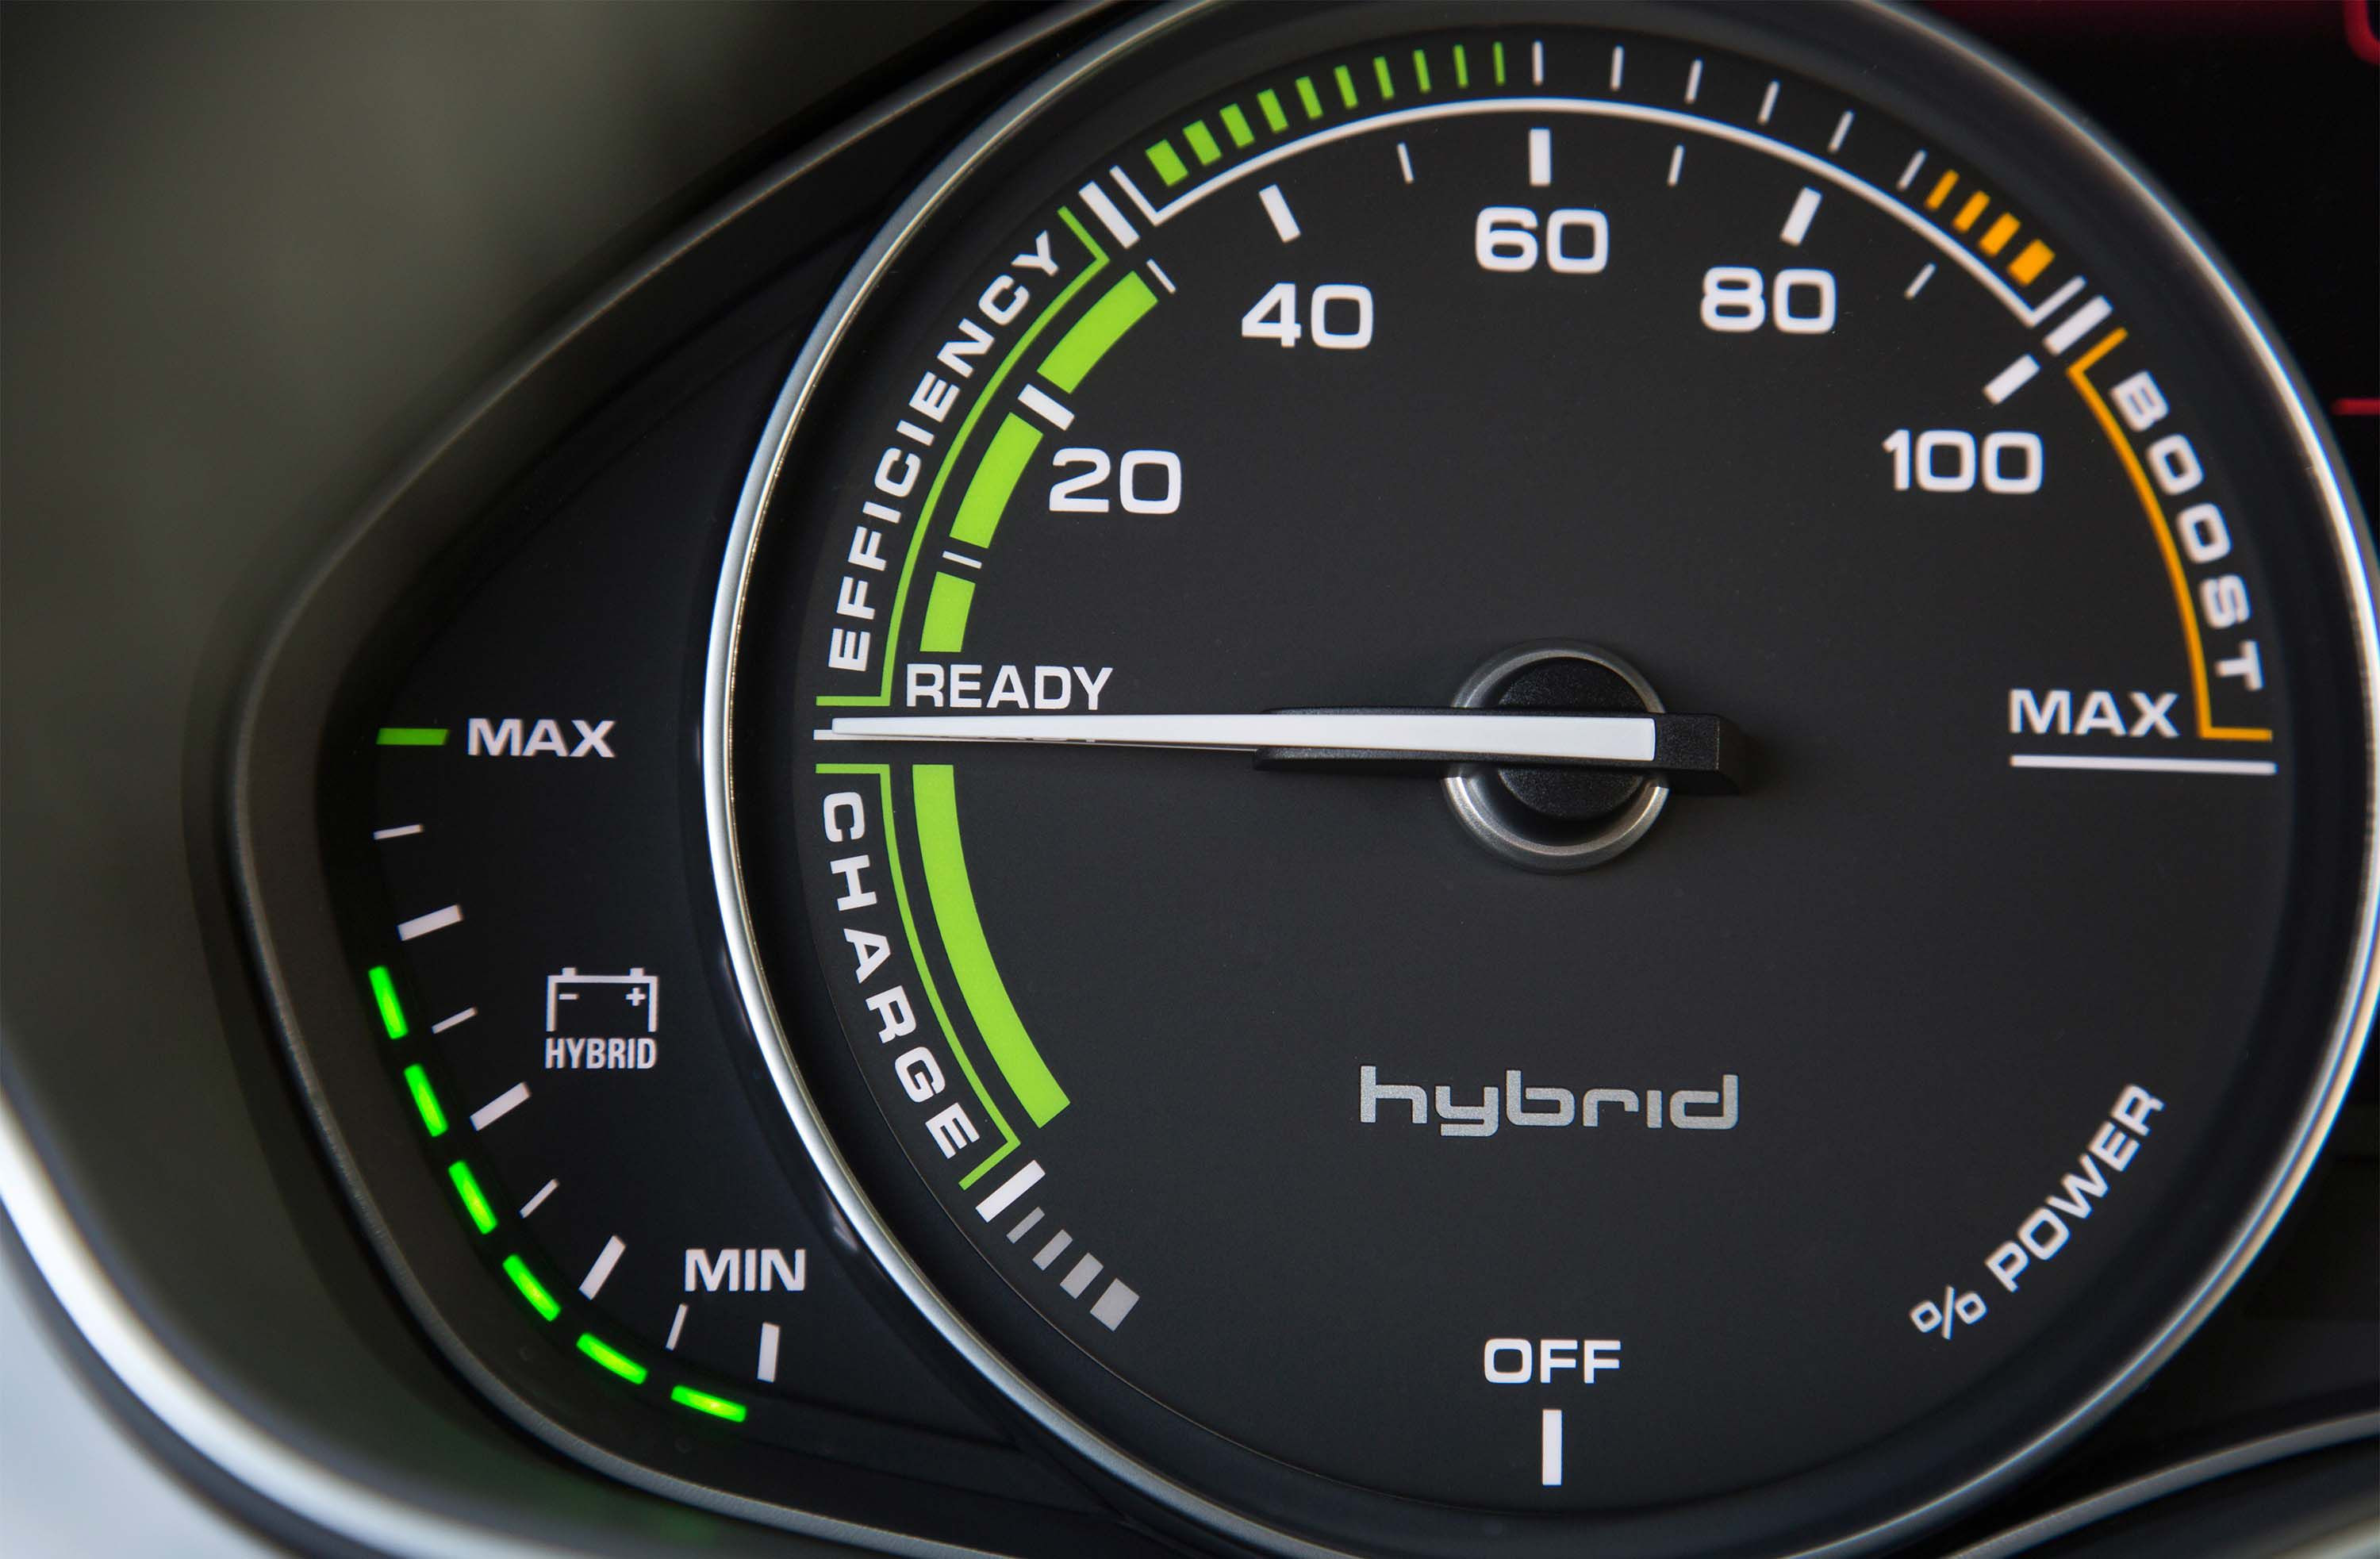 Audi A7 h-tron charge efficiency meter